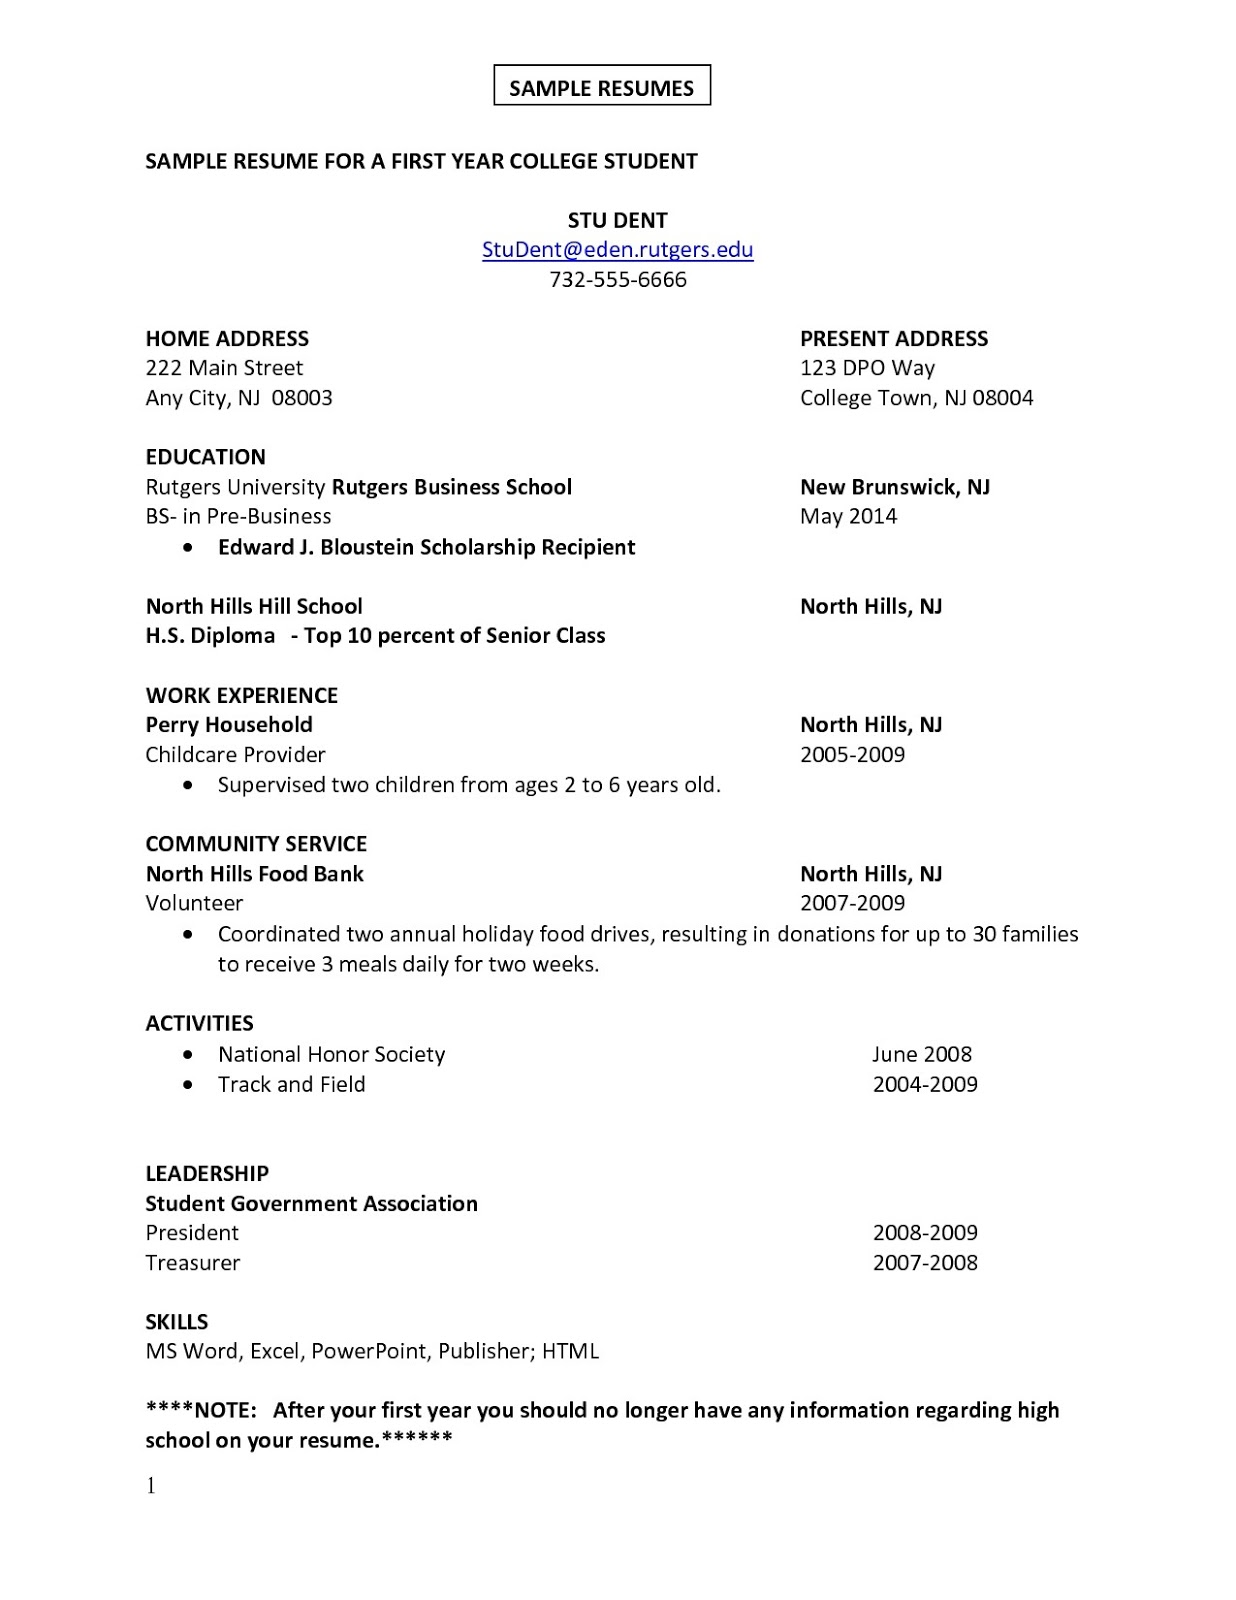 Breakupus Unique Example Web Design Resume Wakeupresumeexamplecom Writing  Resume Sample Free Download Hotel Housekeeping Room Attendant